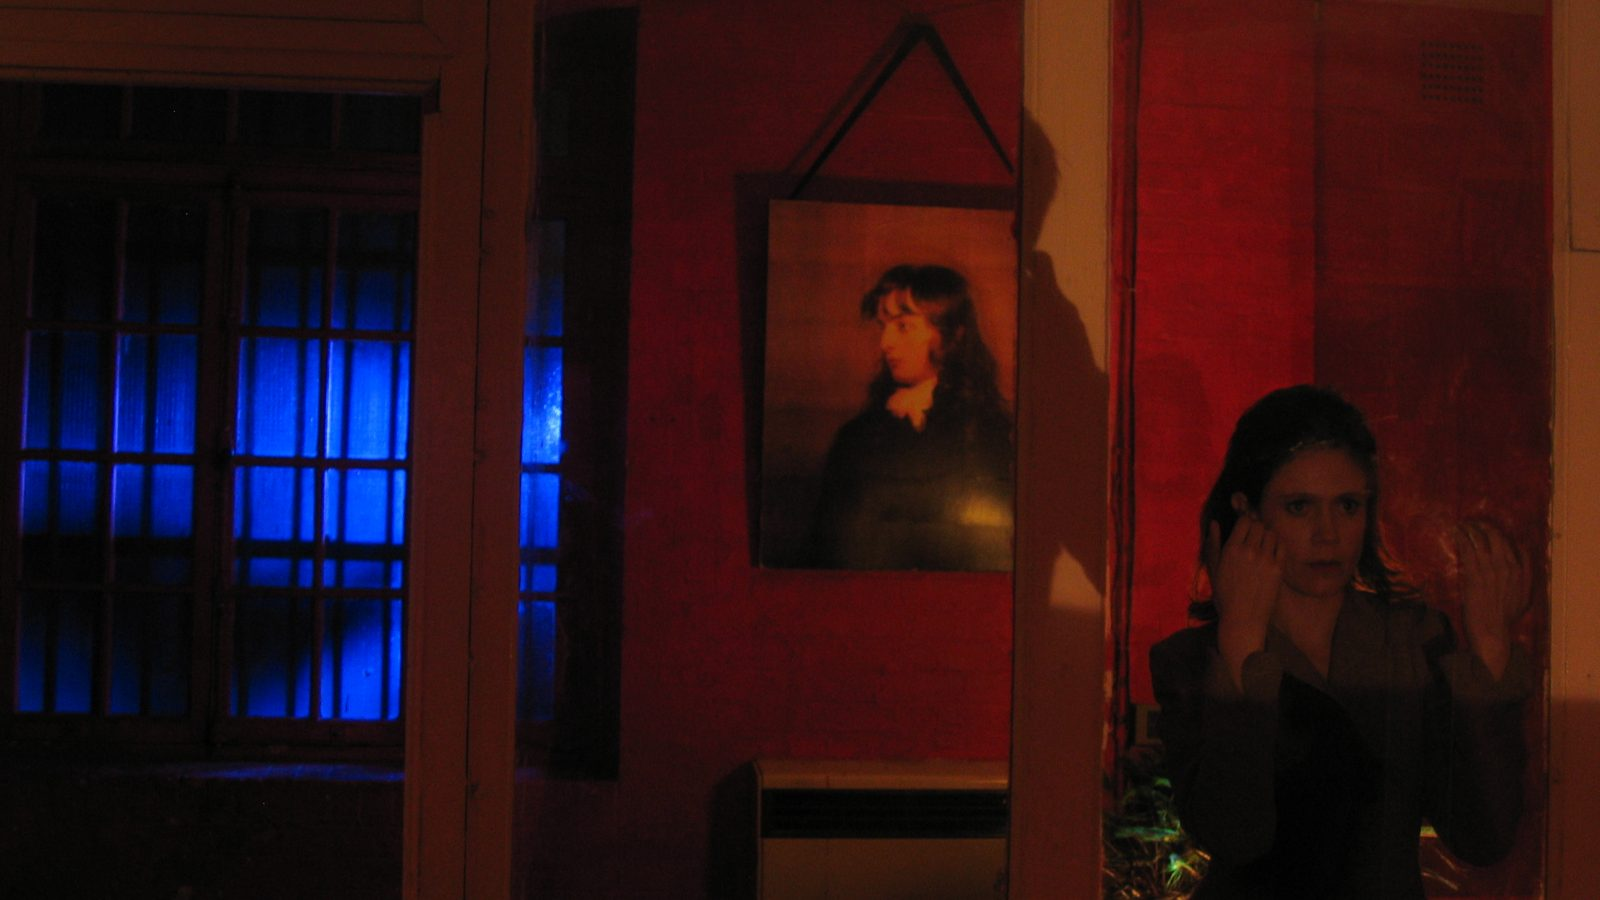 Woman standing in front of clear door frame, old painting and blue window in the background